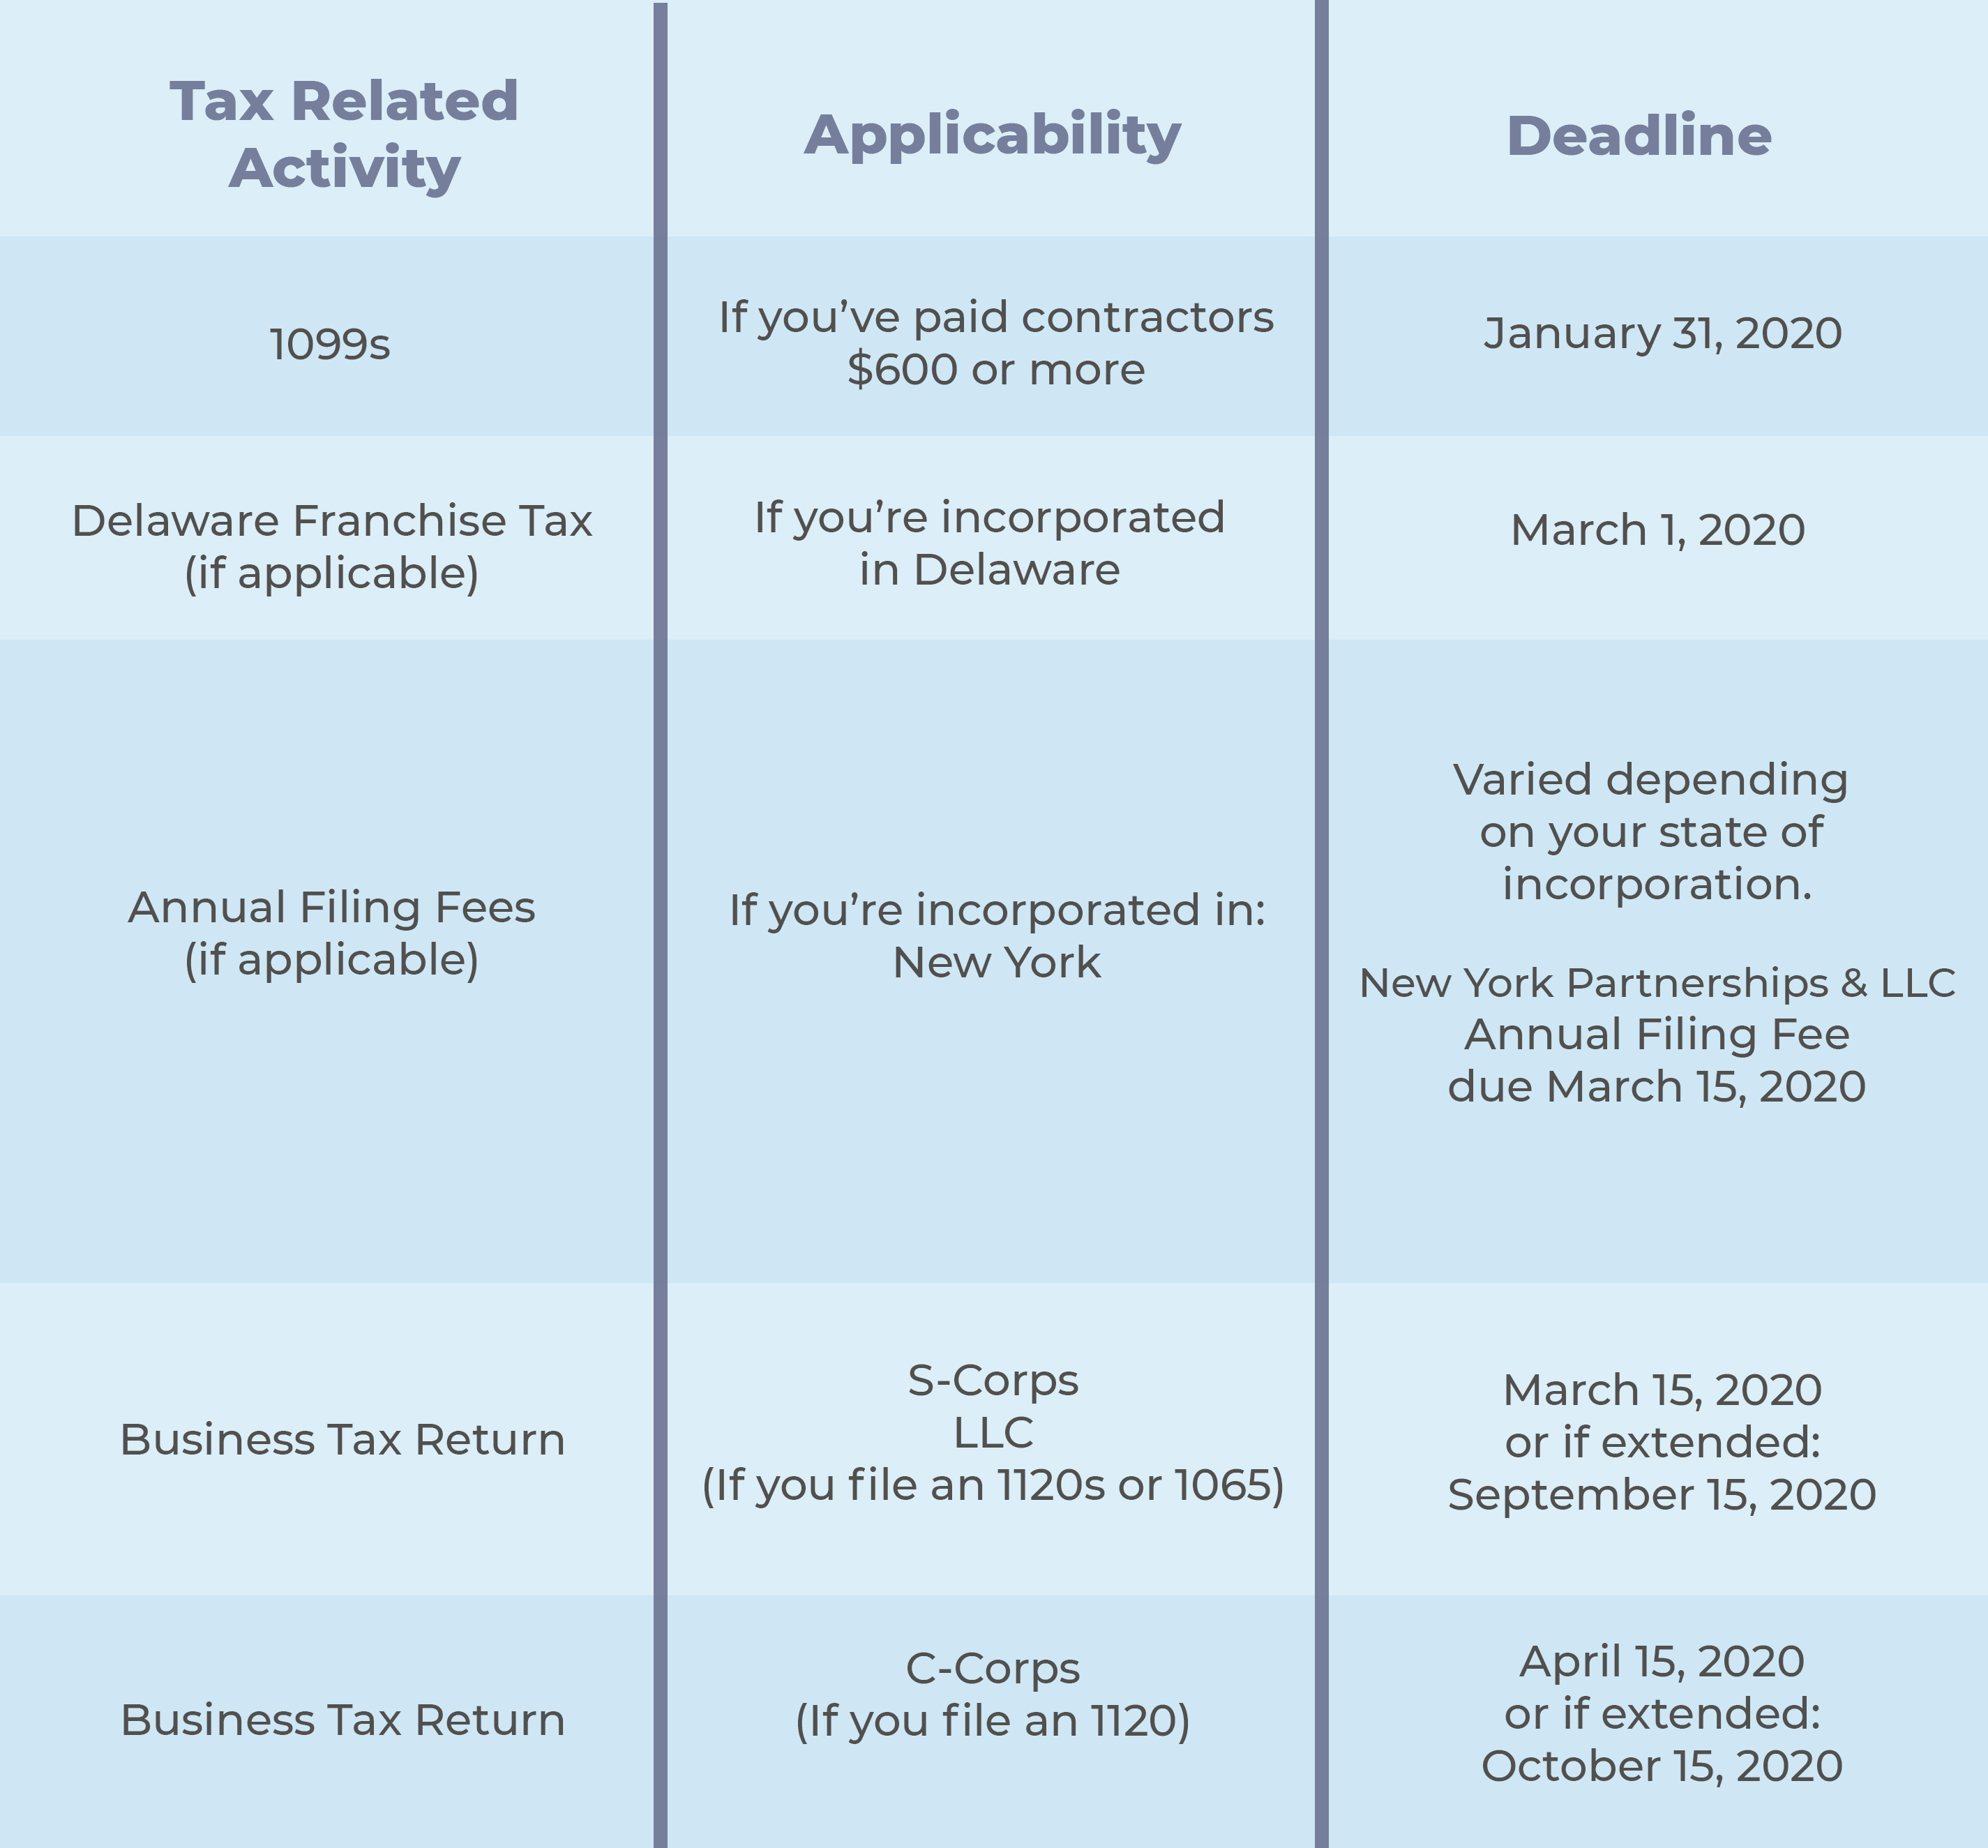 Plan your 2020 tax preparation accordingly using this guide.